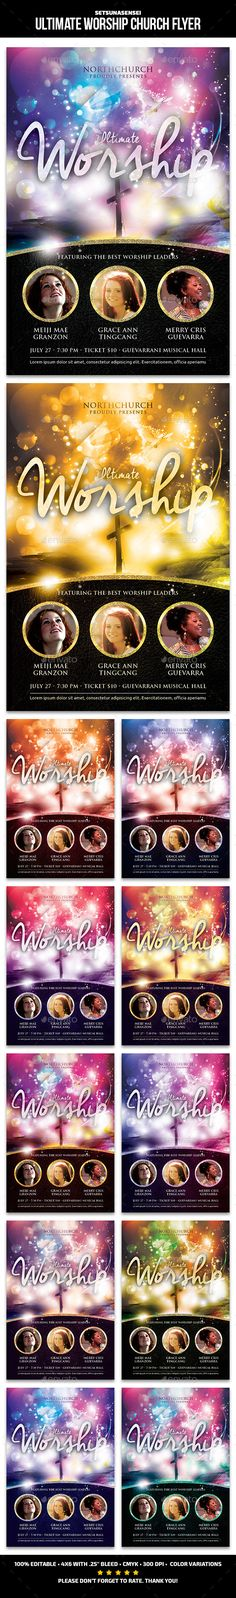 Ultimate Worship Church Flyer Template #design Download: http://graphicriver.net/item/ultimate-worship-church-flyer/12632499?ref=ksioks